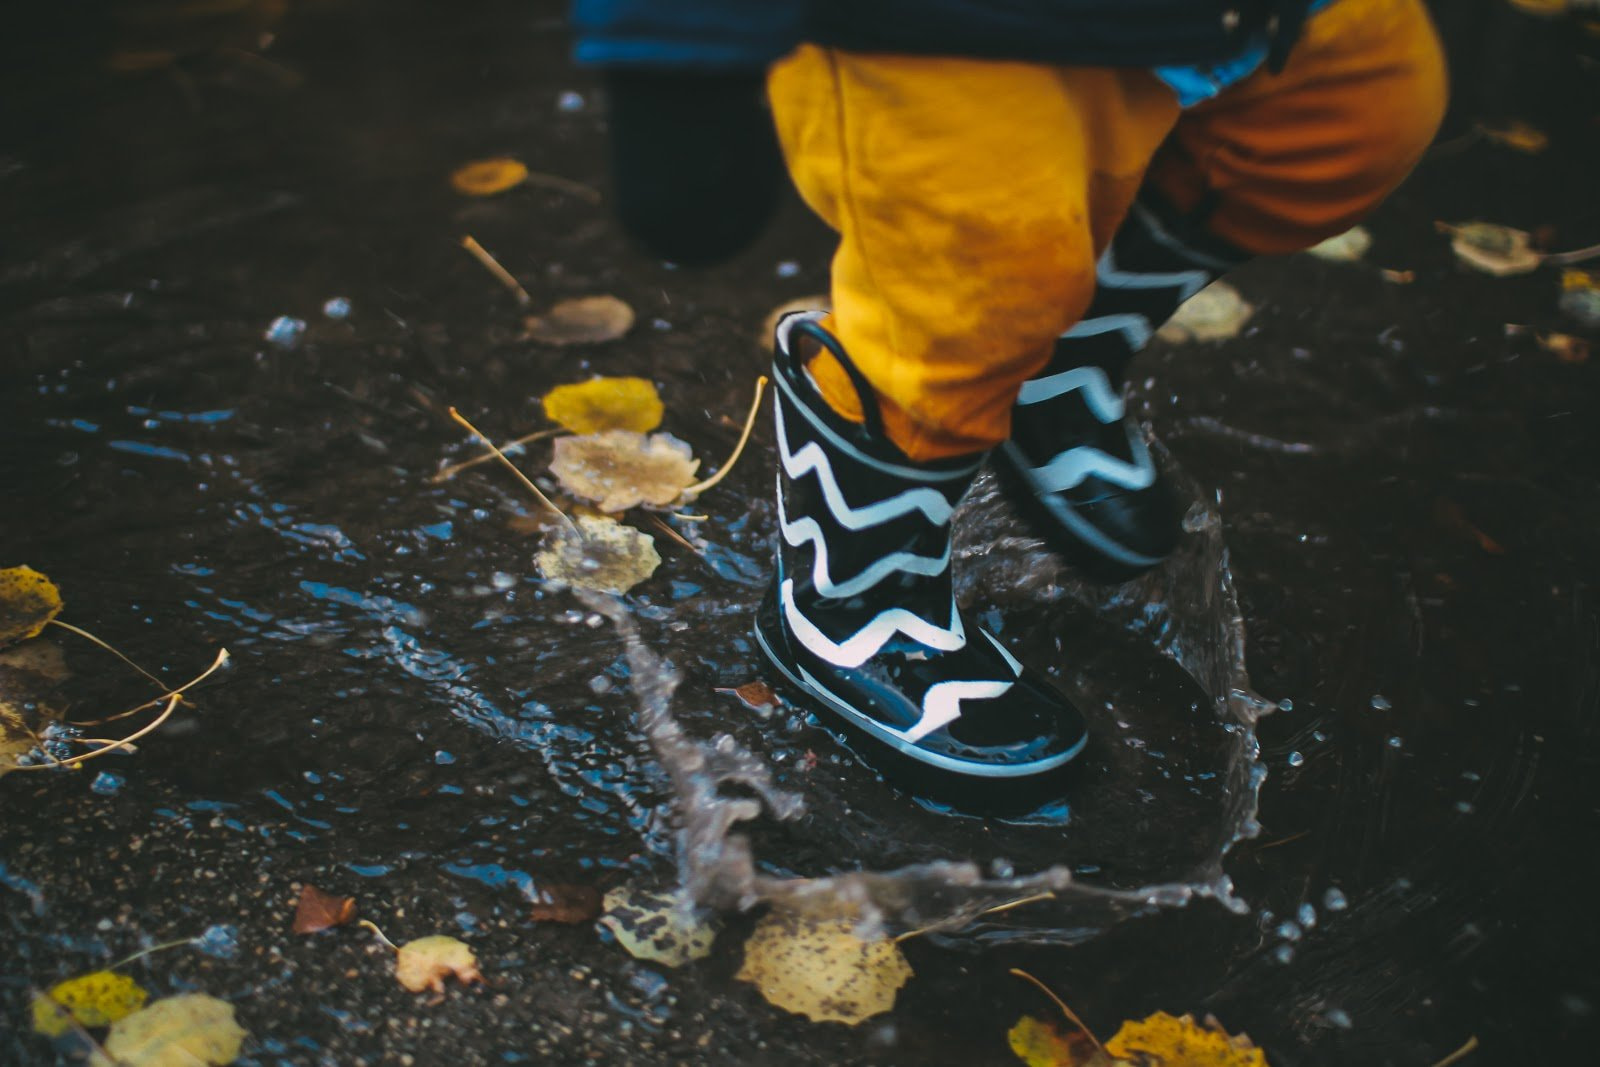 A child's legs in black and white boots skipping through a puddle by Daiga Ellaby